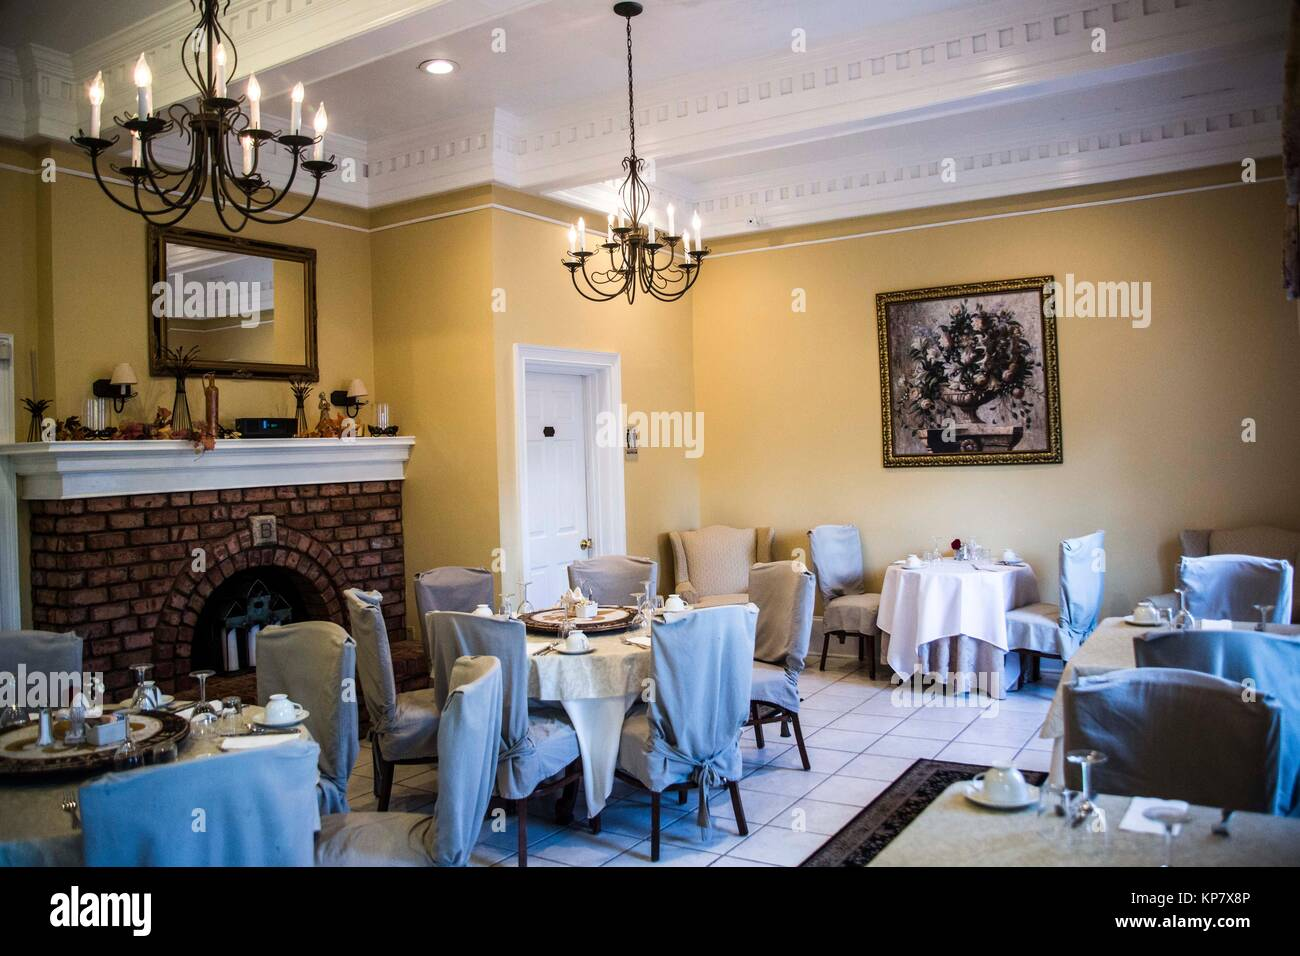 Bed And Breakfast Woburn Beautiful Dining Room With Fireplace Inside A Bed And Breakfast